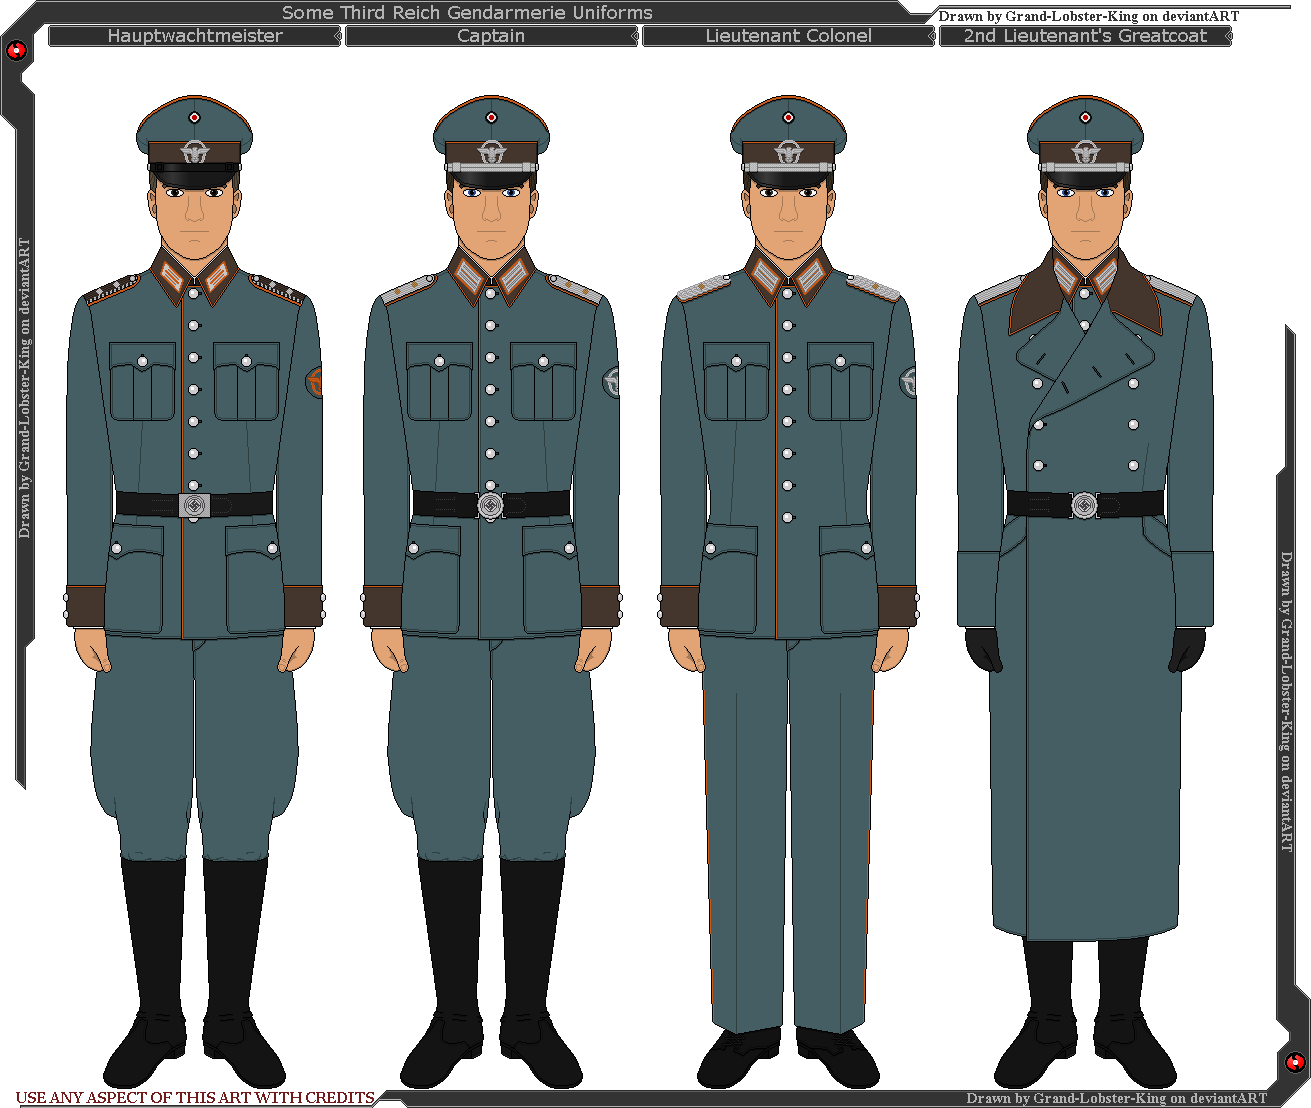 Some Third Reich Gendarmerie Uniforms by Grand-Lobster ...